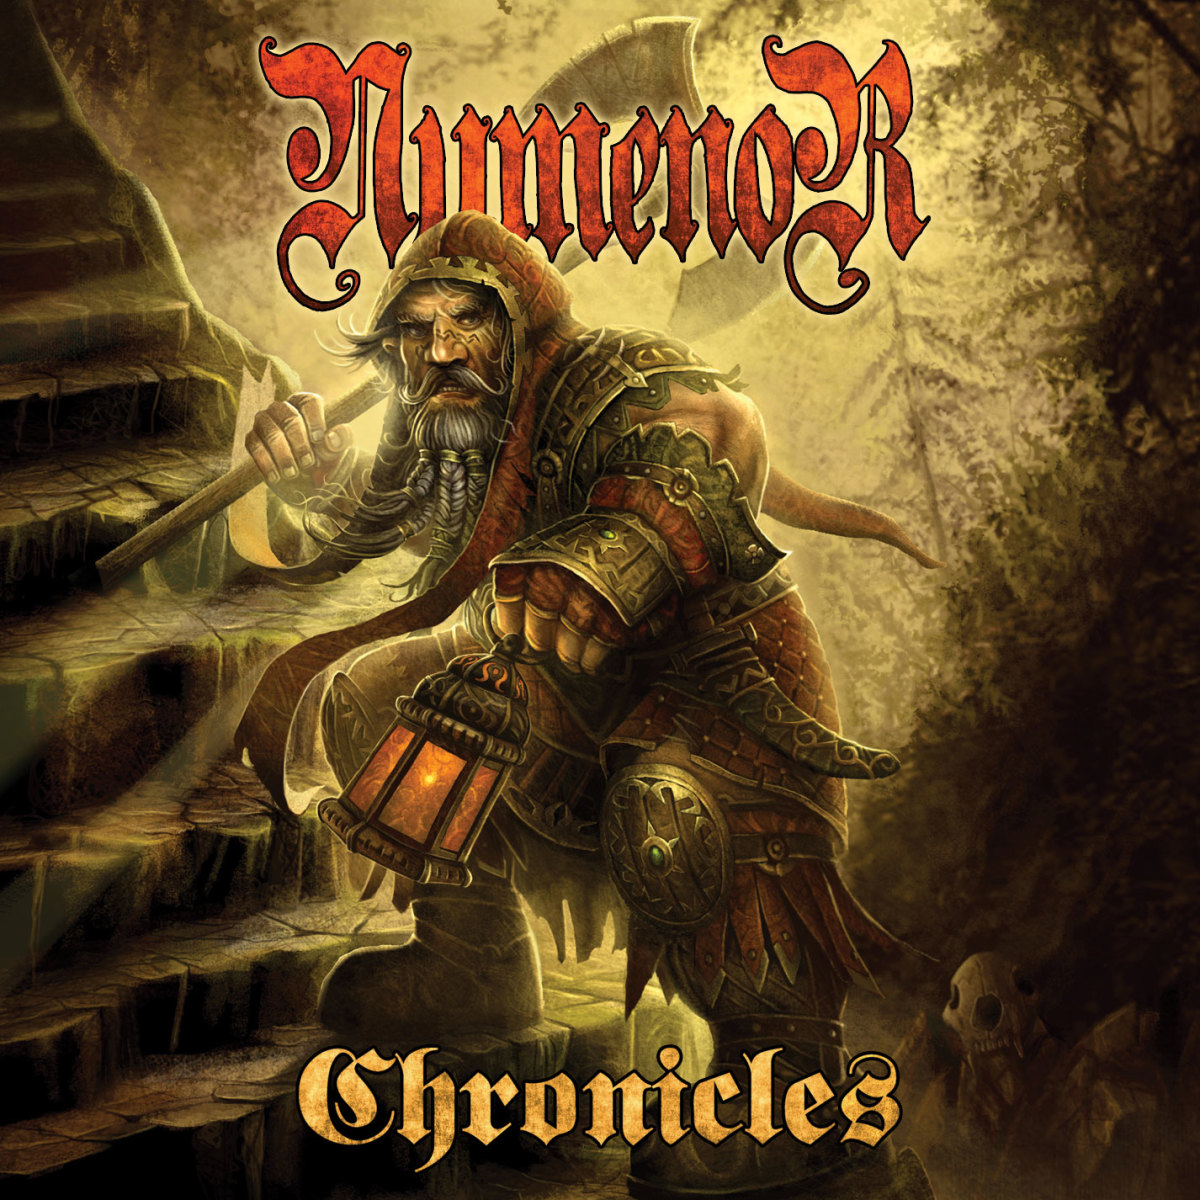 numenor-chronicles-2017-album-review